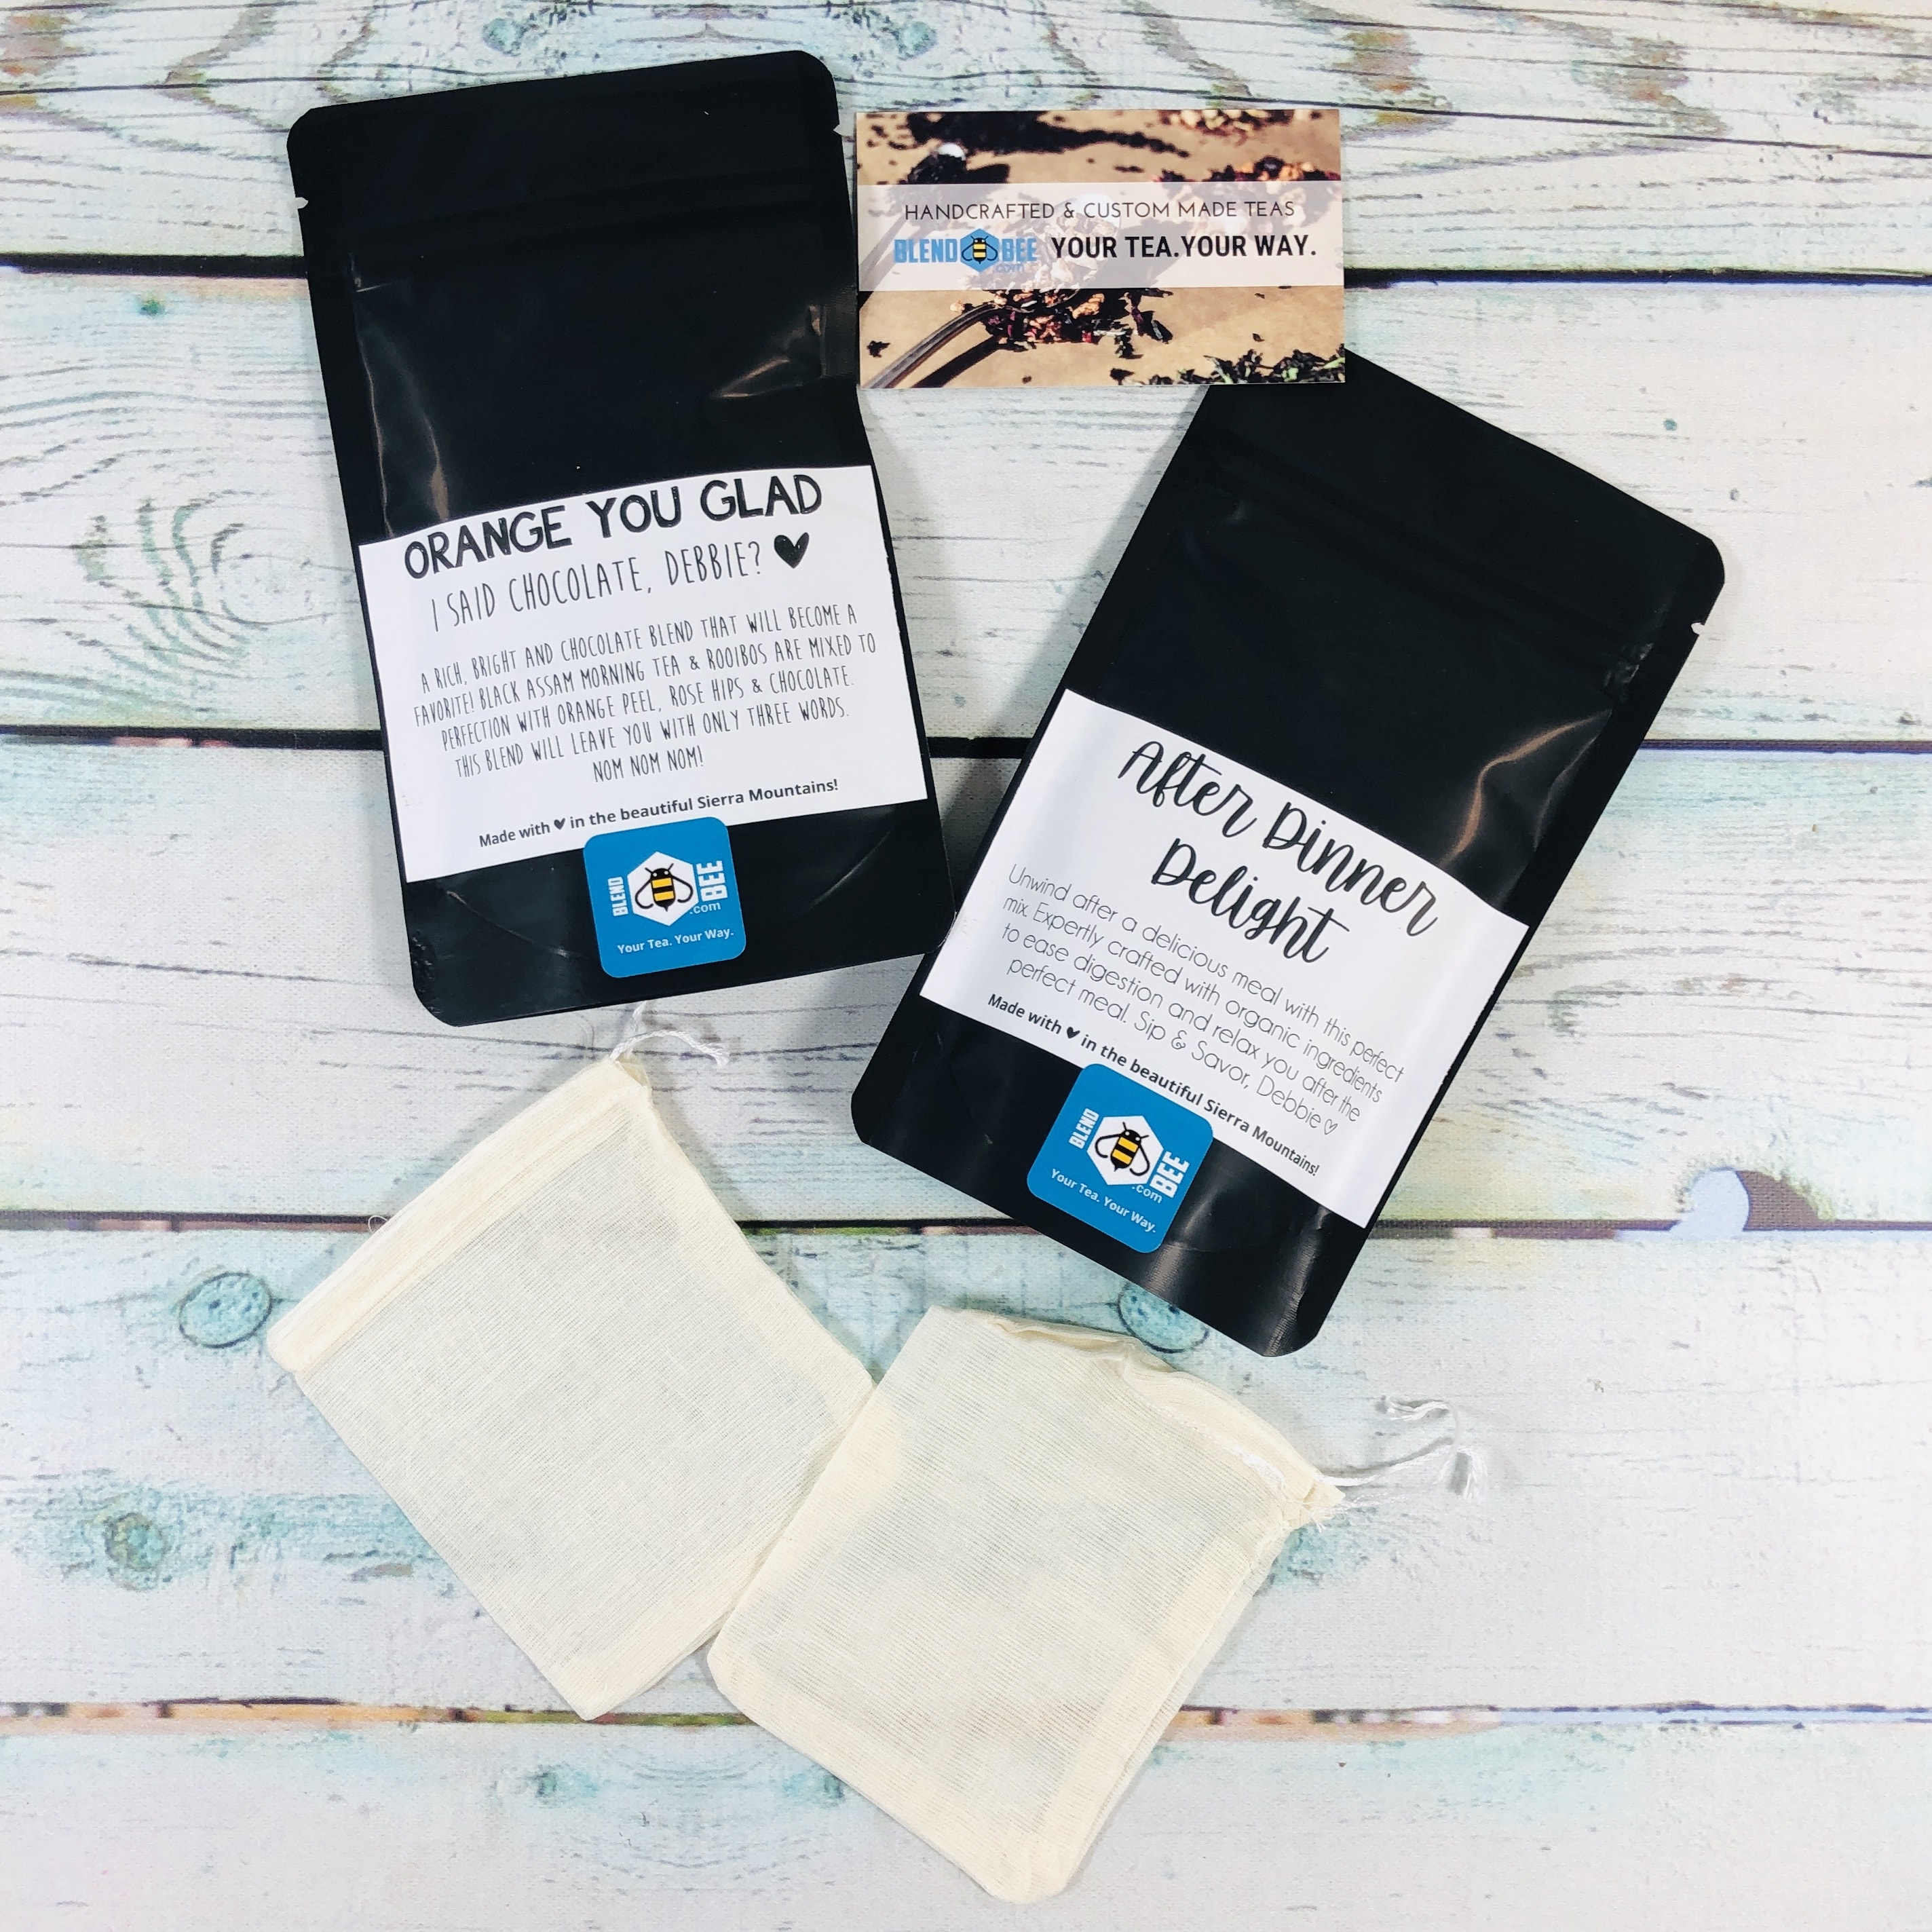 BlendBee Monthly Tea Club March 2019 Subscription Box Review